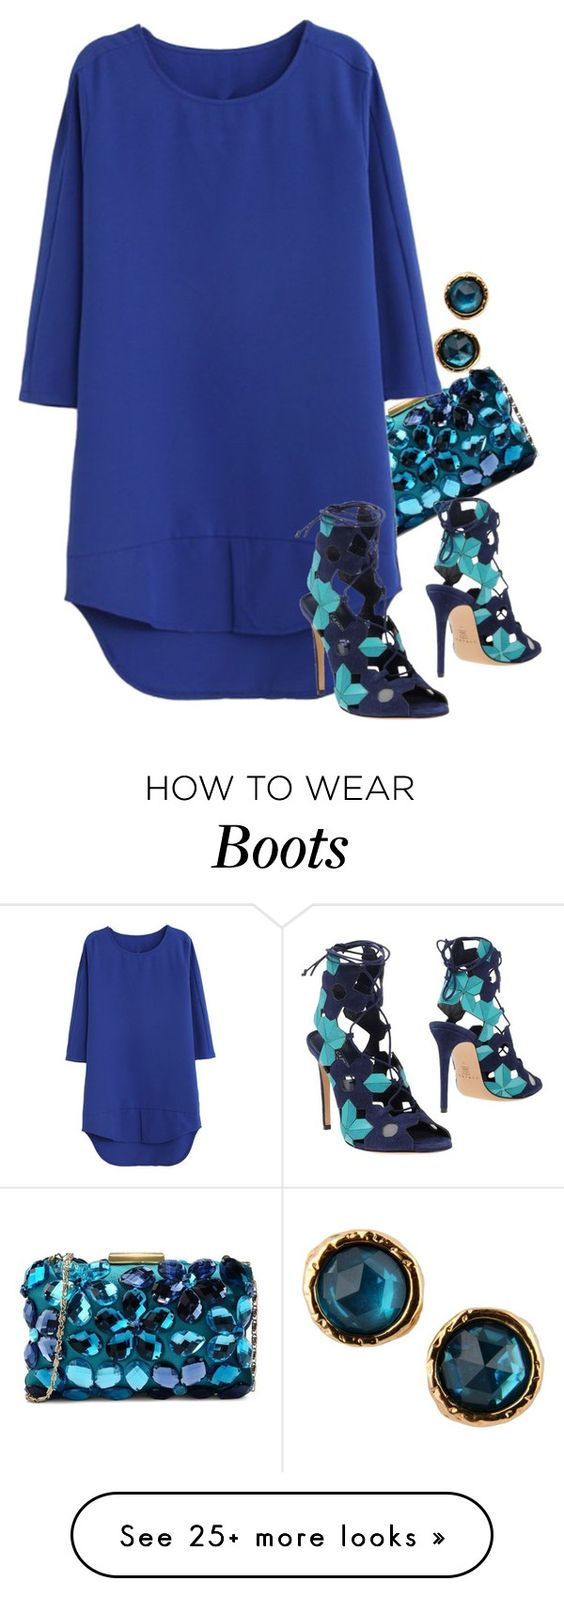 """blue bubbles"" by ele88na on Polyvore featuring Love Moschino, WithChic, Casadei, Marc by Marc Jacobs, women's clothing, women, female, woman, misses and juniors:"